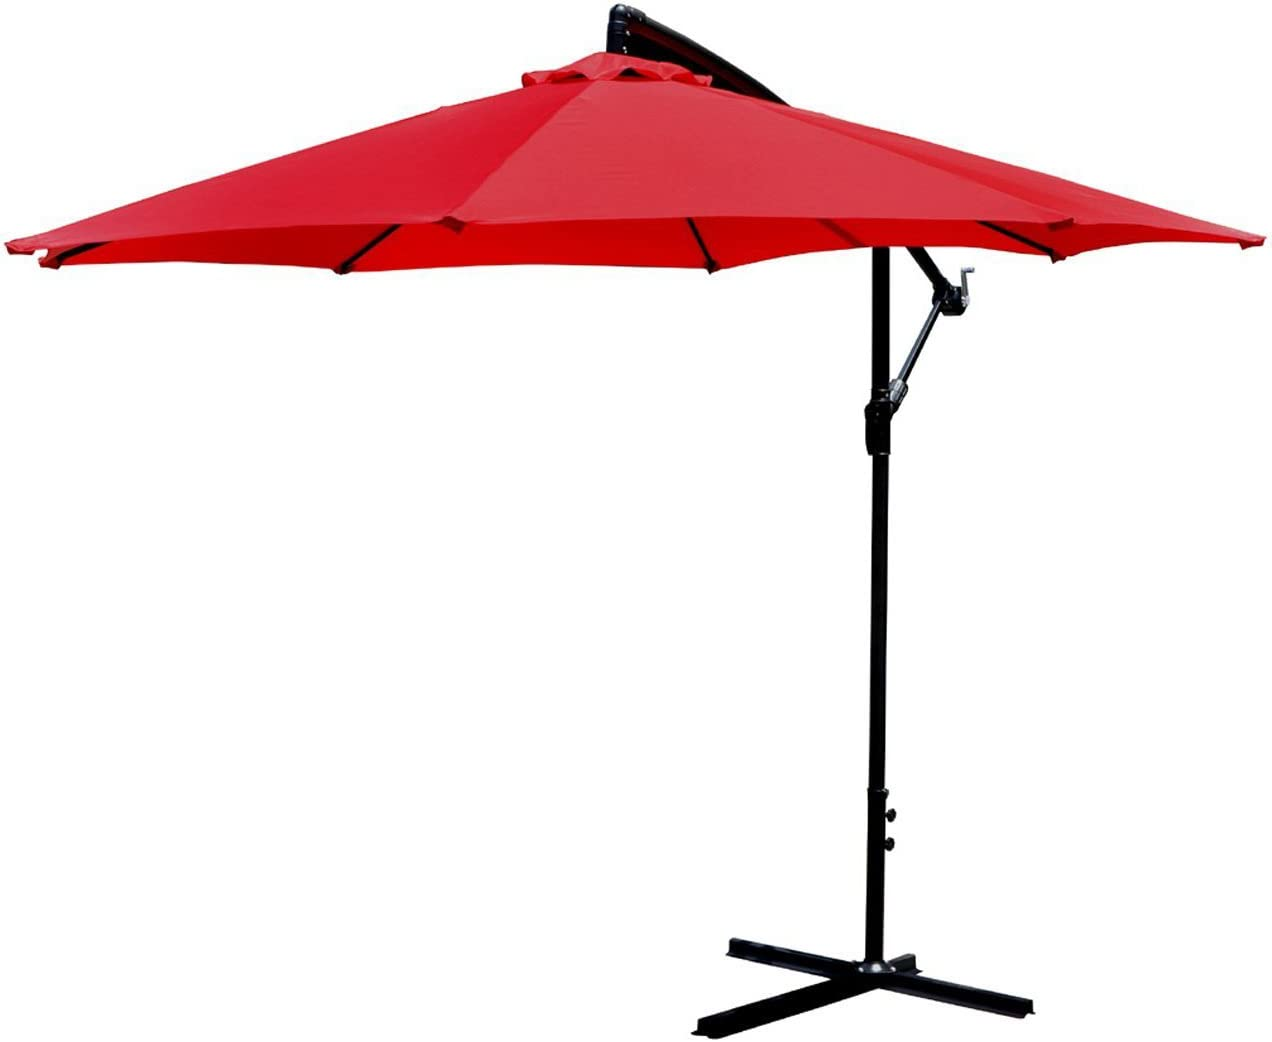 PayLessHere Patio Umbrella Offset 10 Hanging Umbrella Outdoor Market Umbrella Red